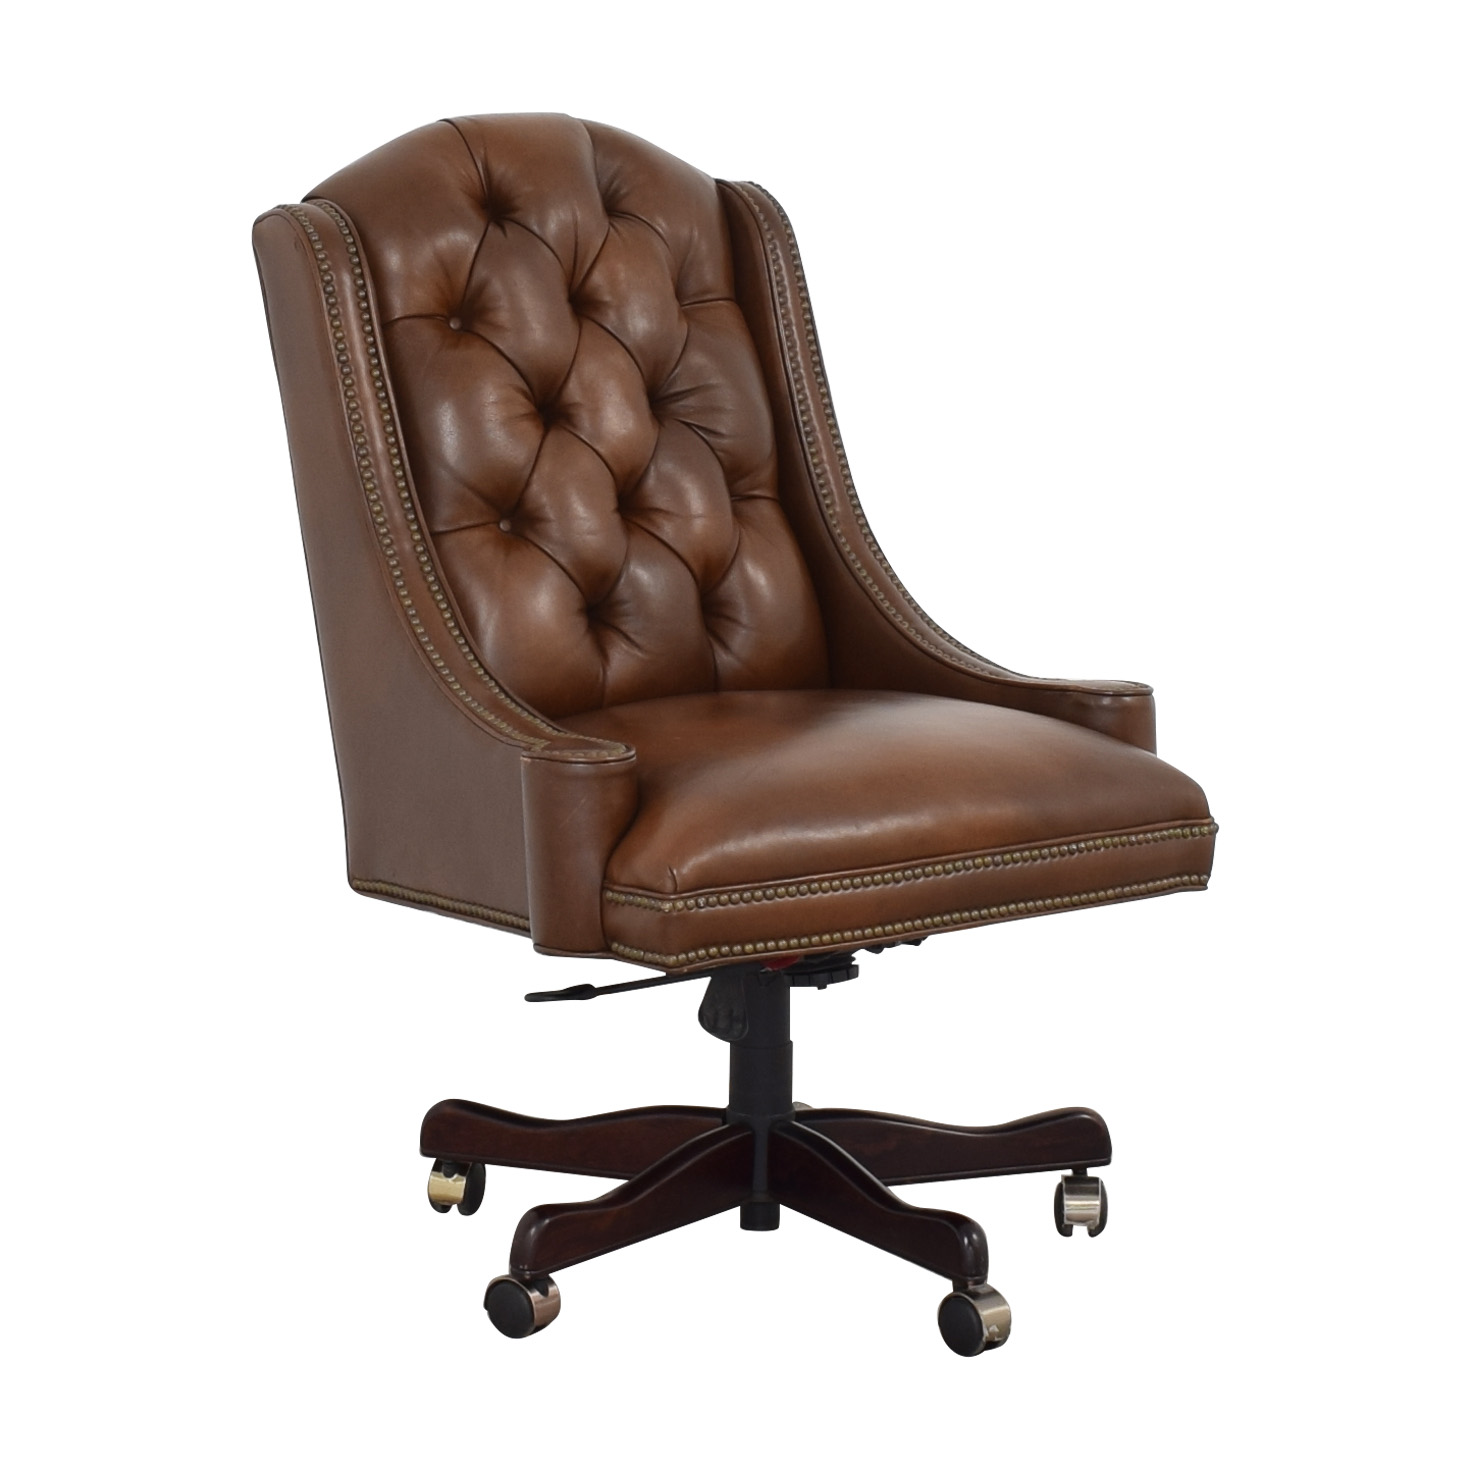 Our House Designs Our House Designs Swivel Chair ma